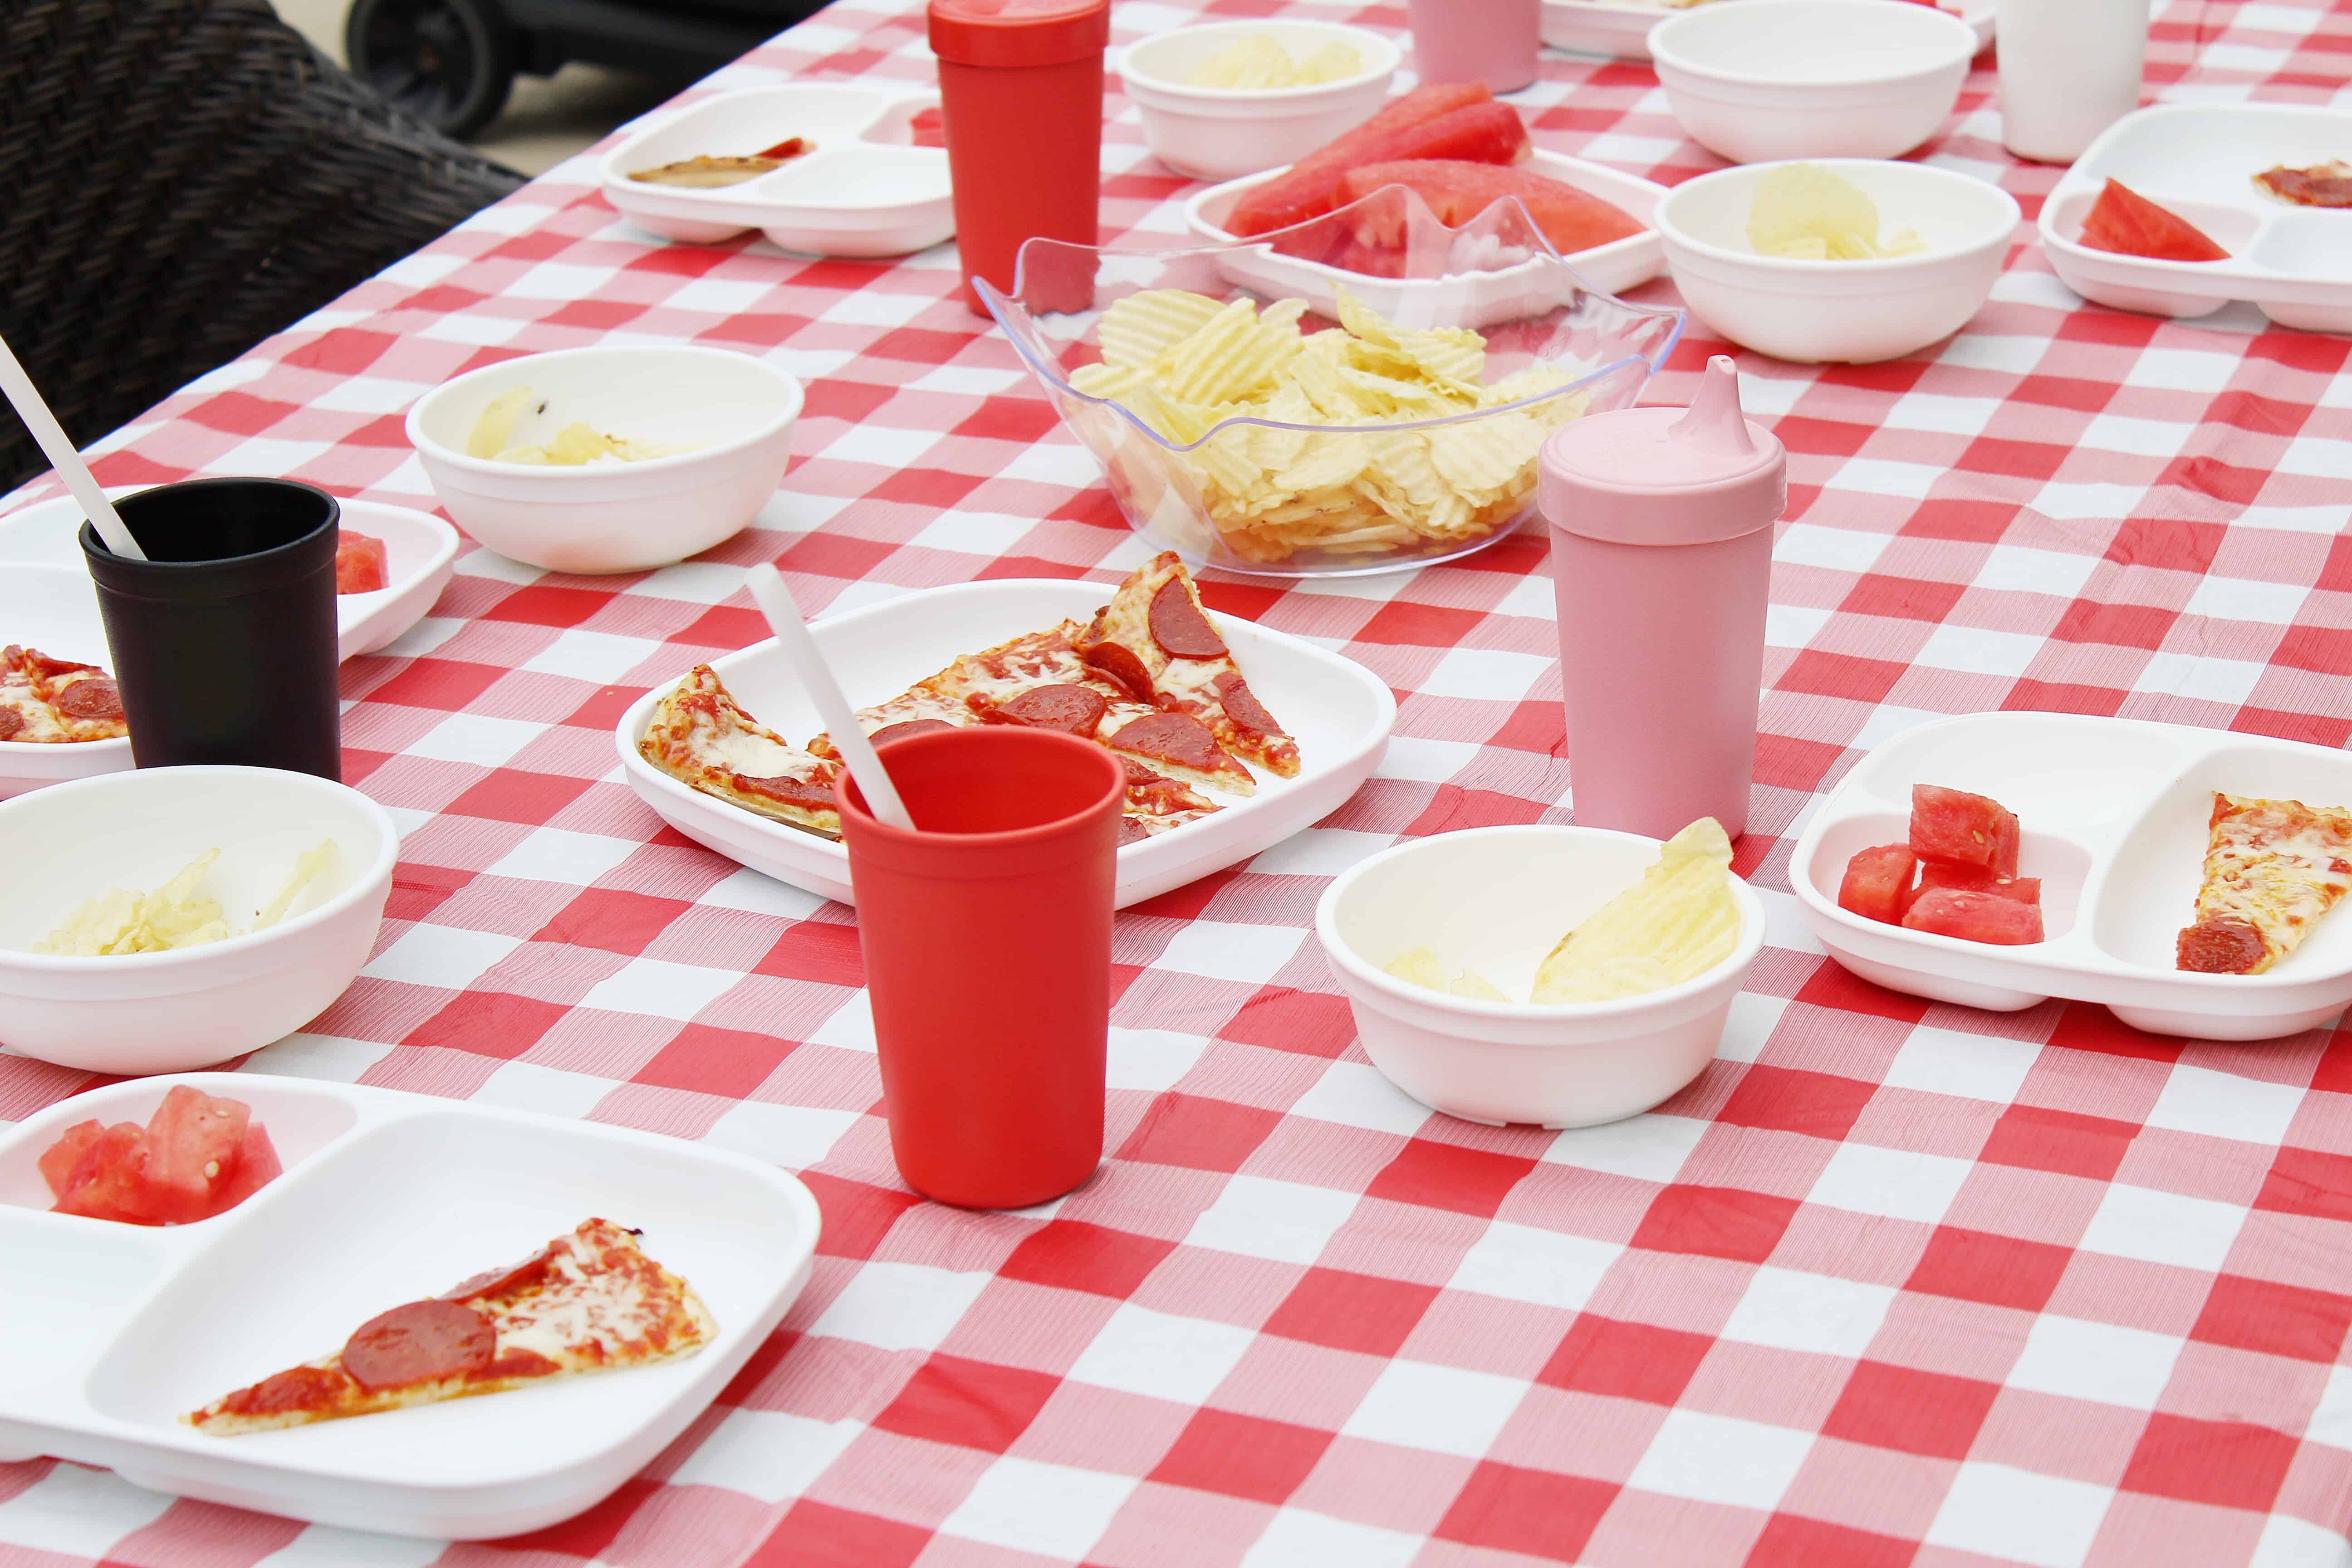 red and white table cloth with plates and cups